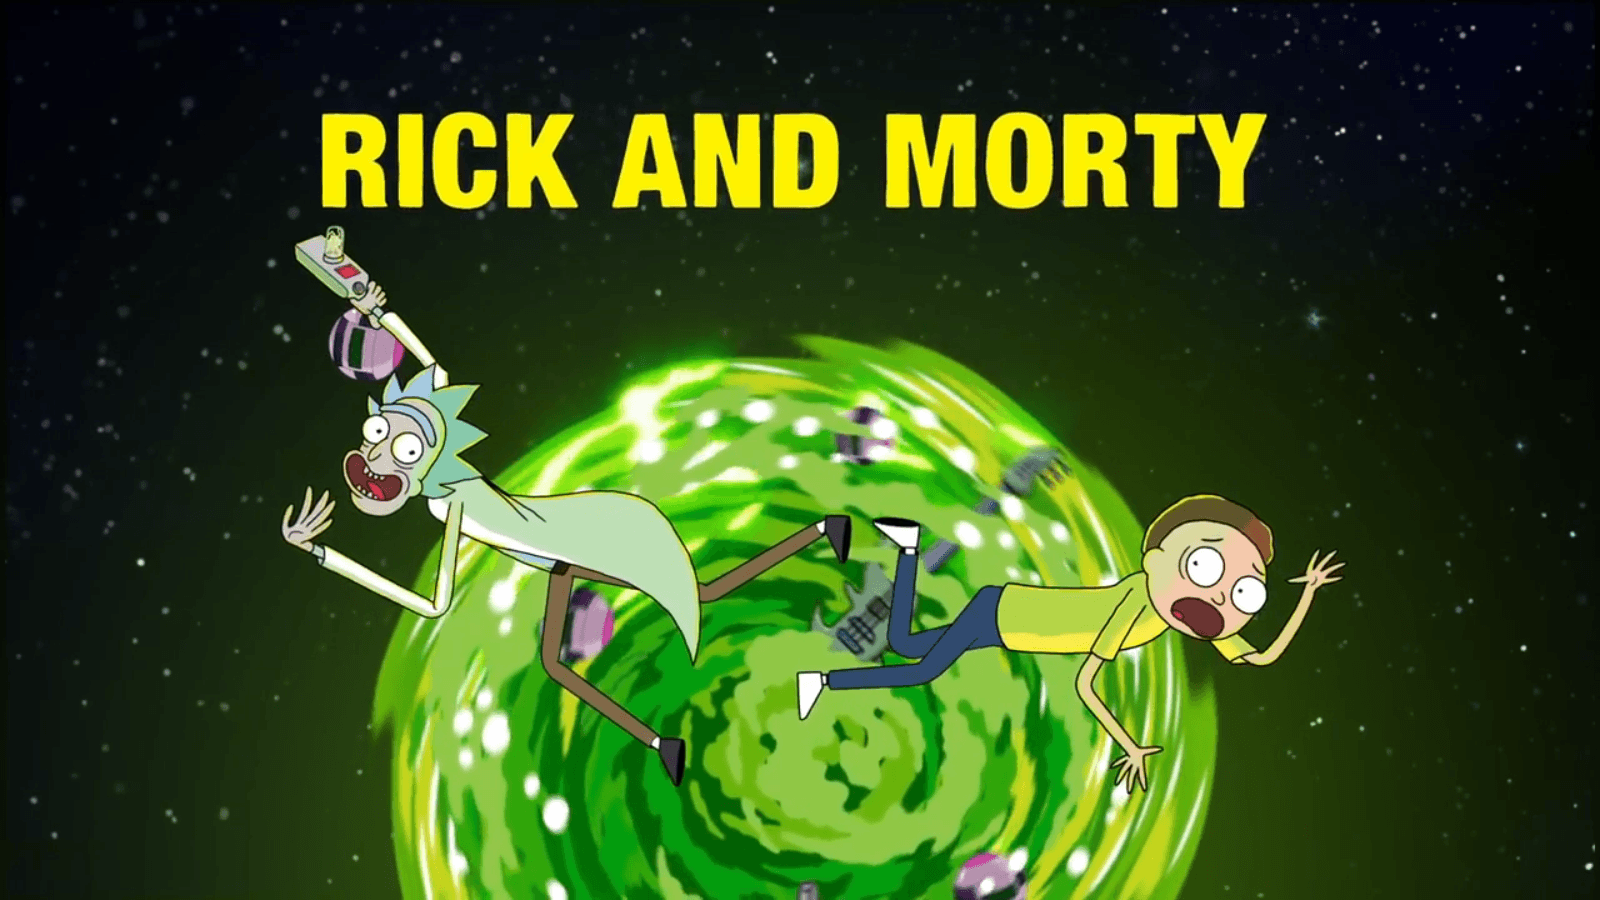 Rick And Morty Wallpapers   Wallpaper Cave 176 Rick And Morty HD Wallpapers   Backgrounds   Wallpaper Abyss